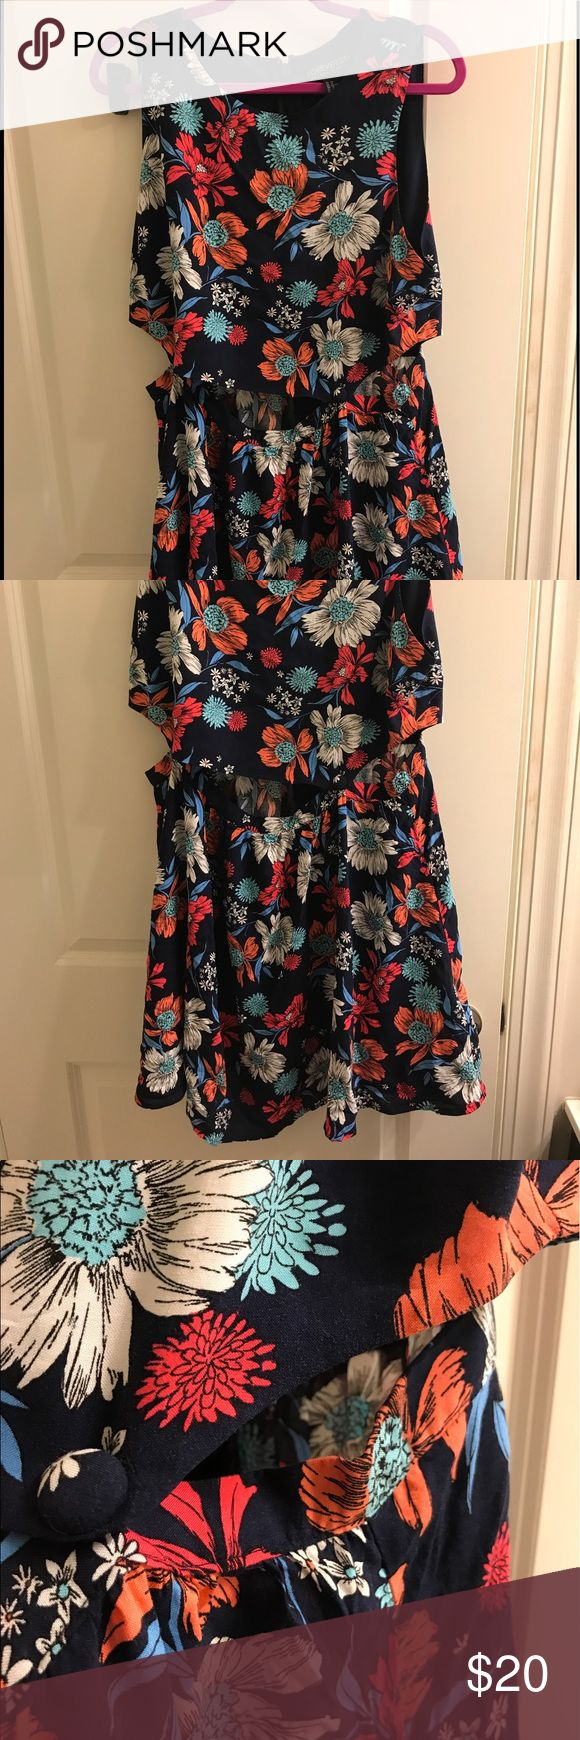 Floral dress with waist cut outs It's a floral dress that has peekaboo going on in the middle in the front and it has two buttons very cute Forever 21 Dresses